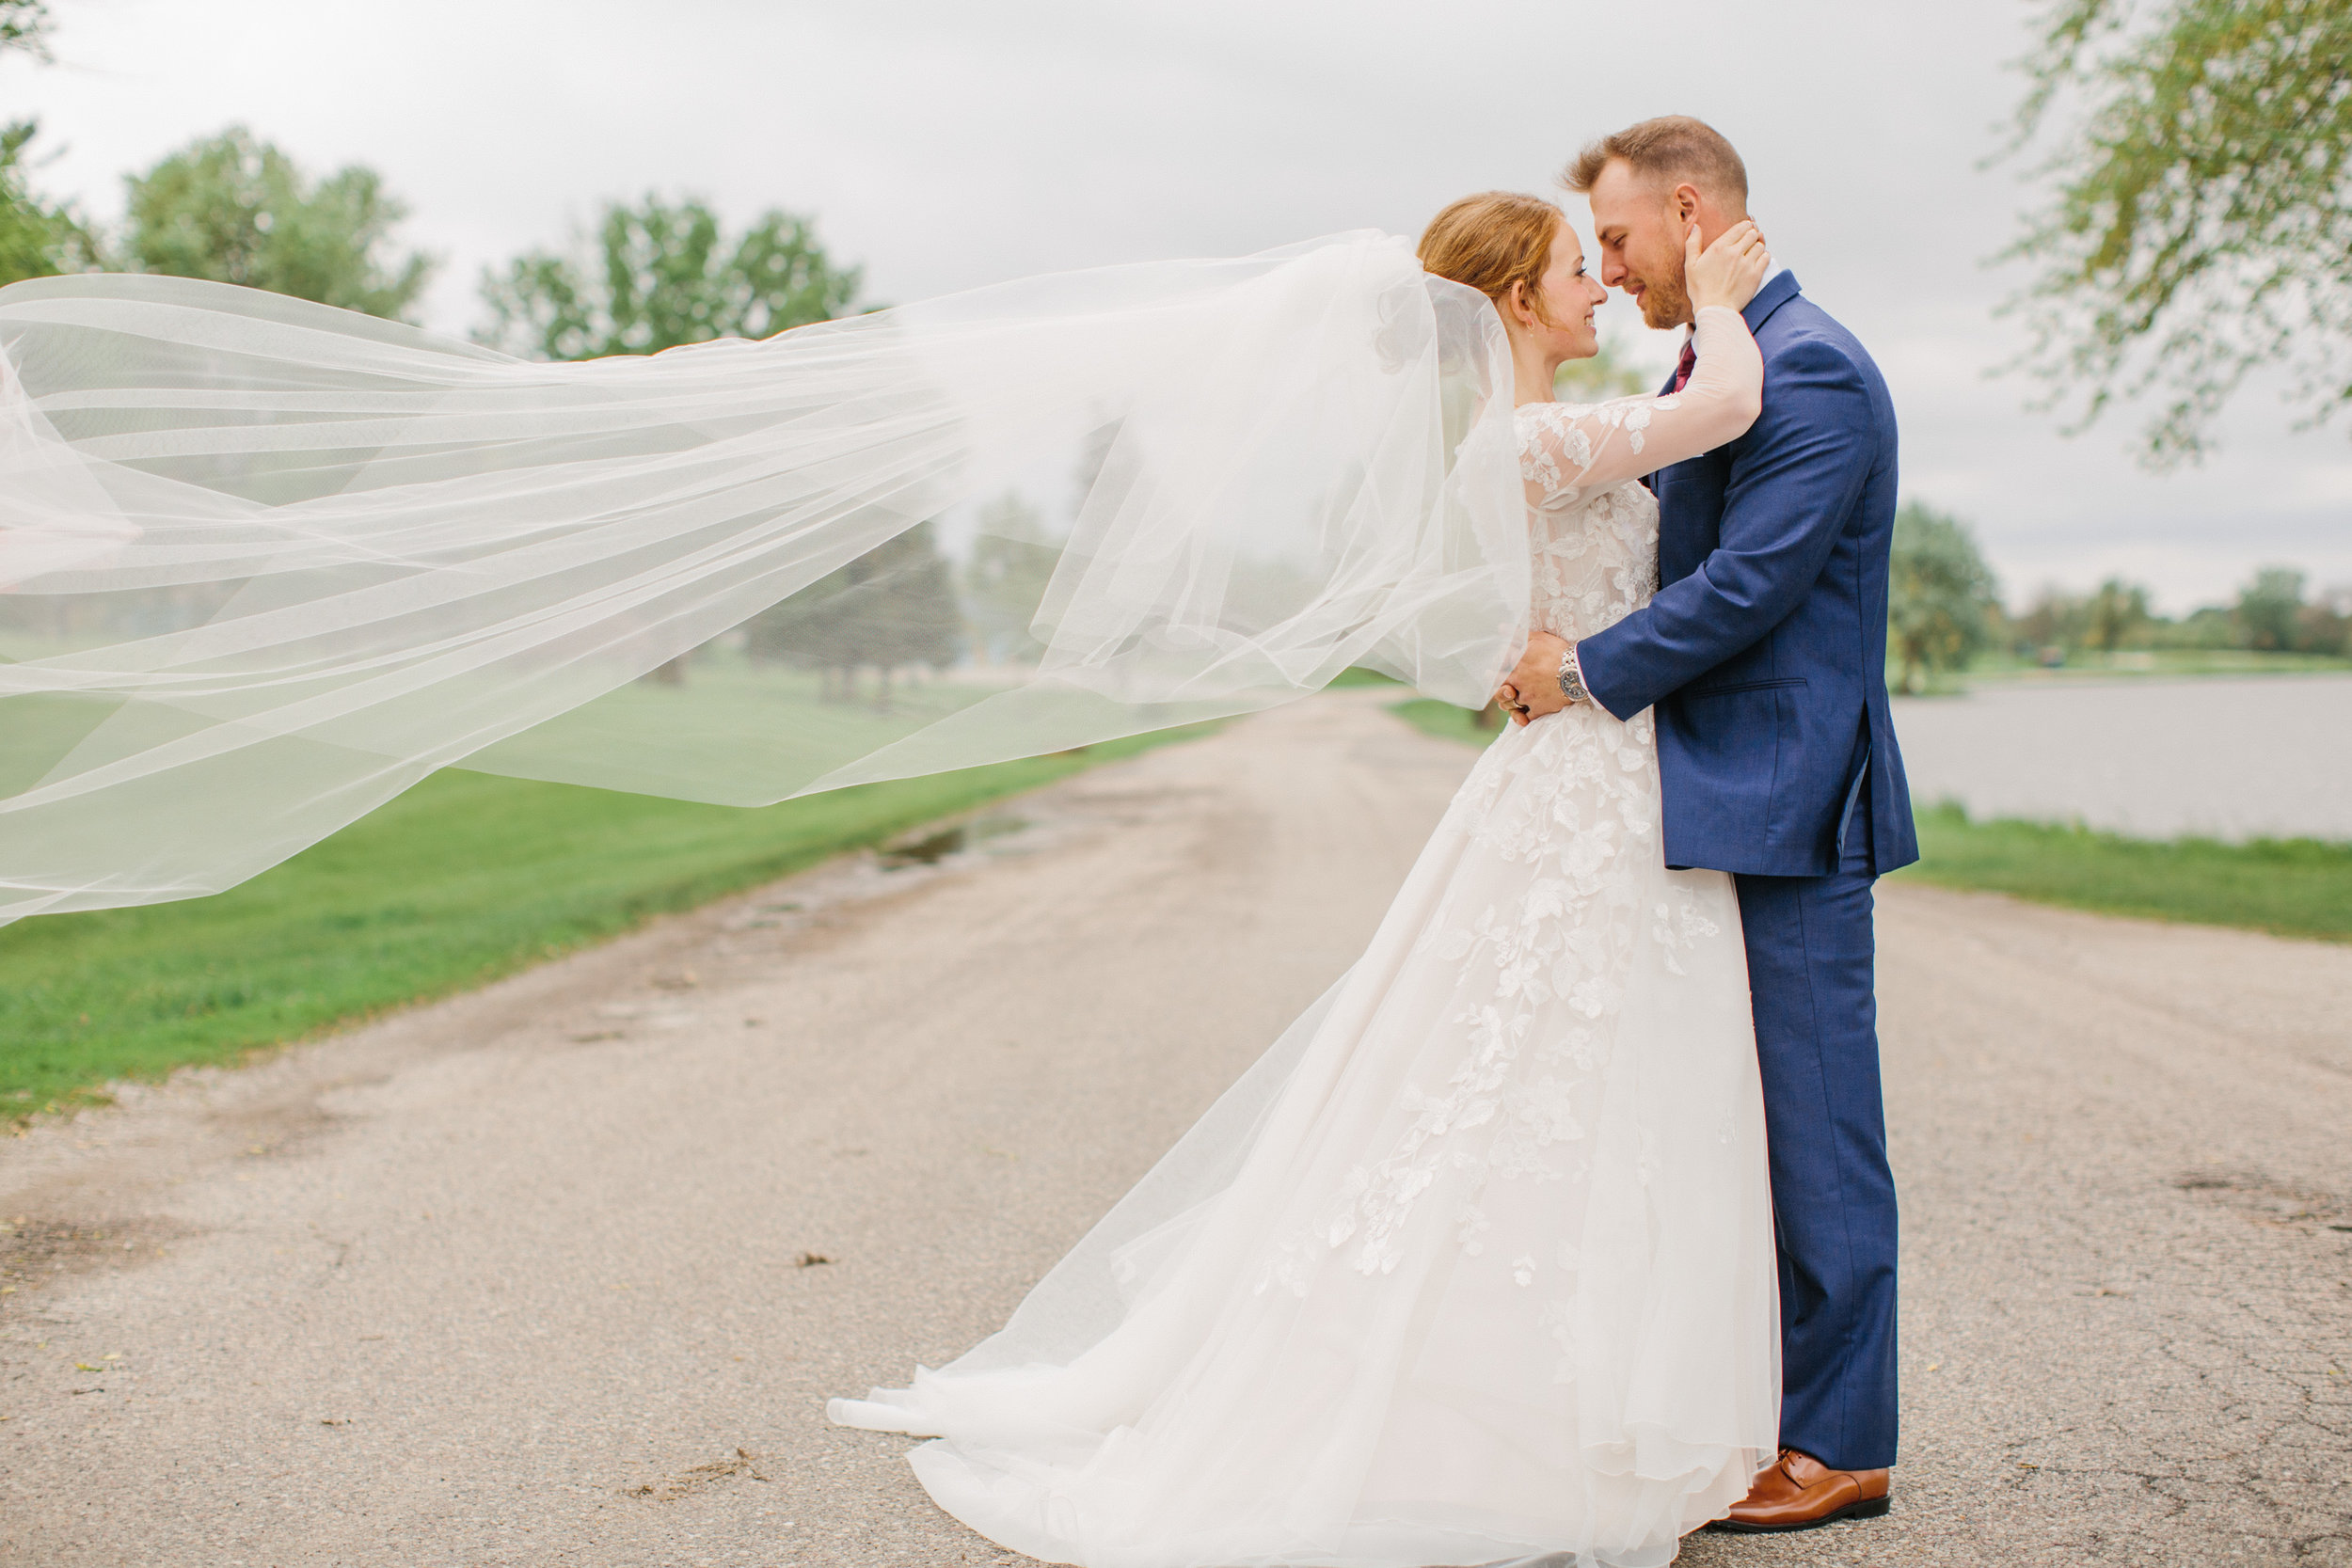 des moines wedding photographers downtown amelia renee wedding veil cathedral length photos